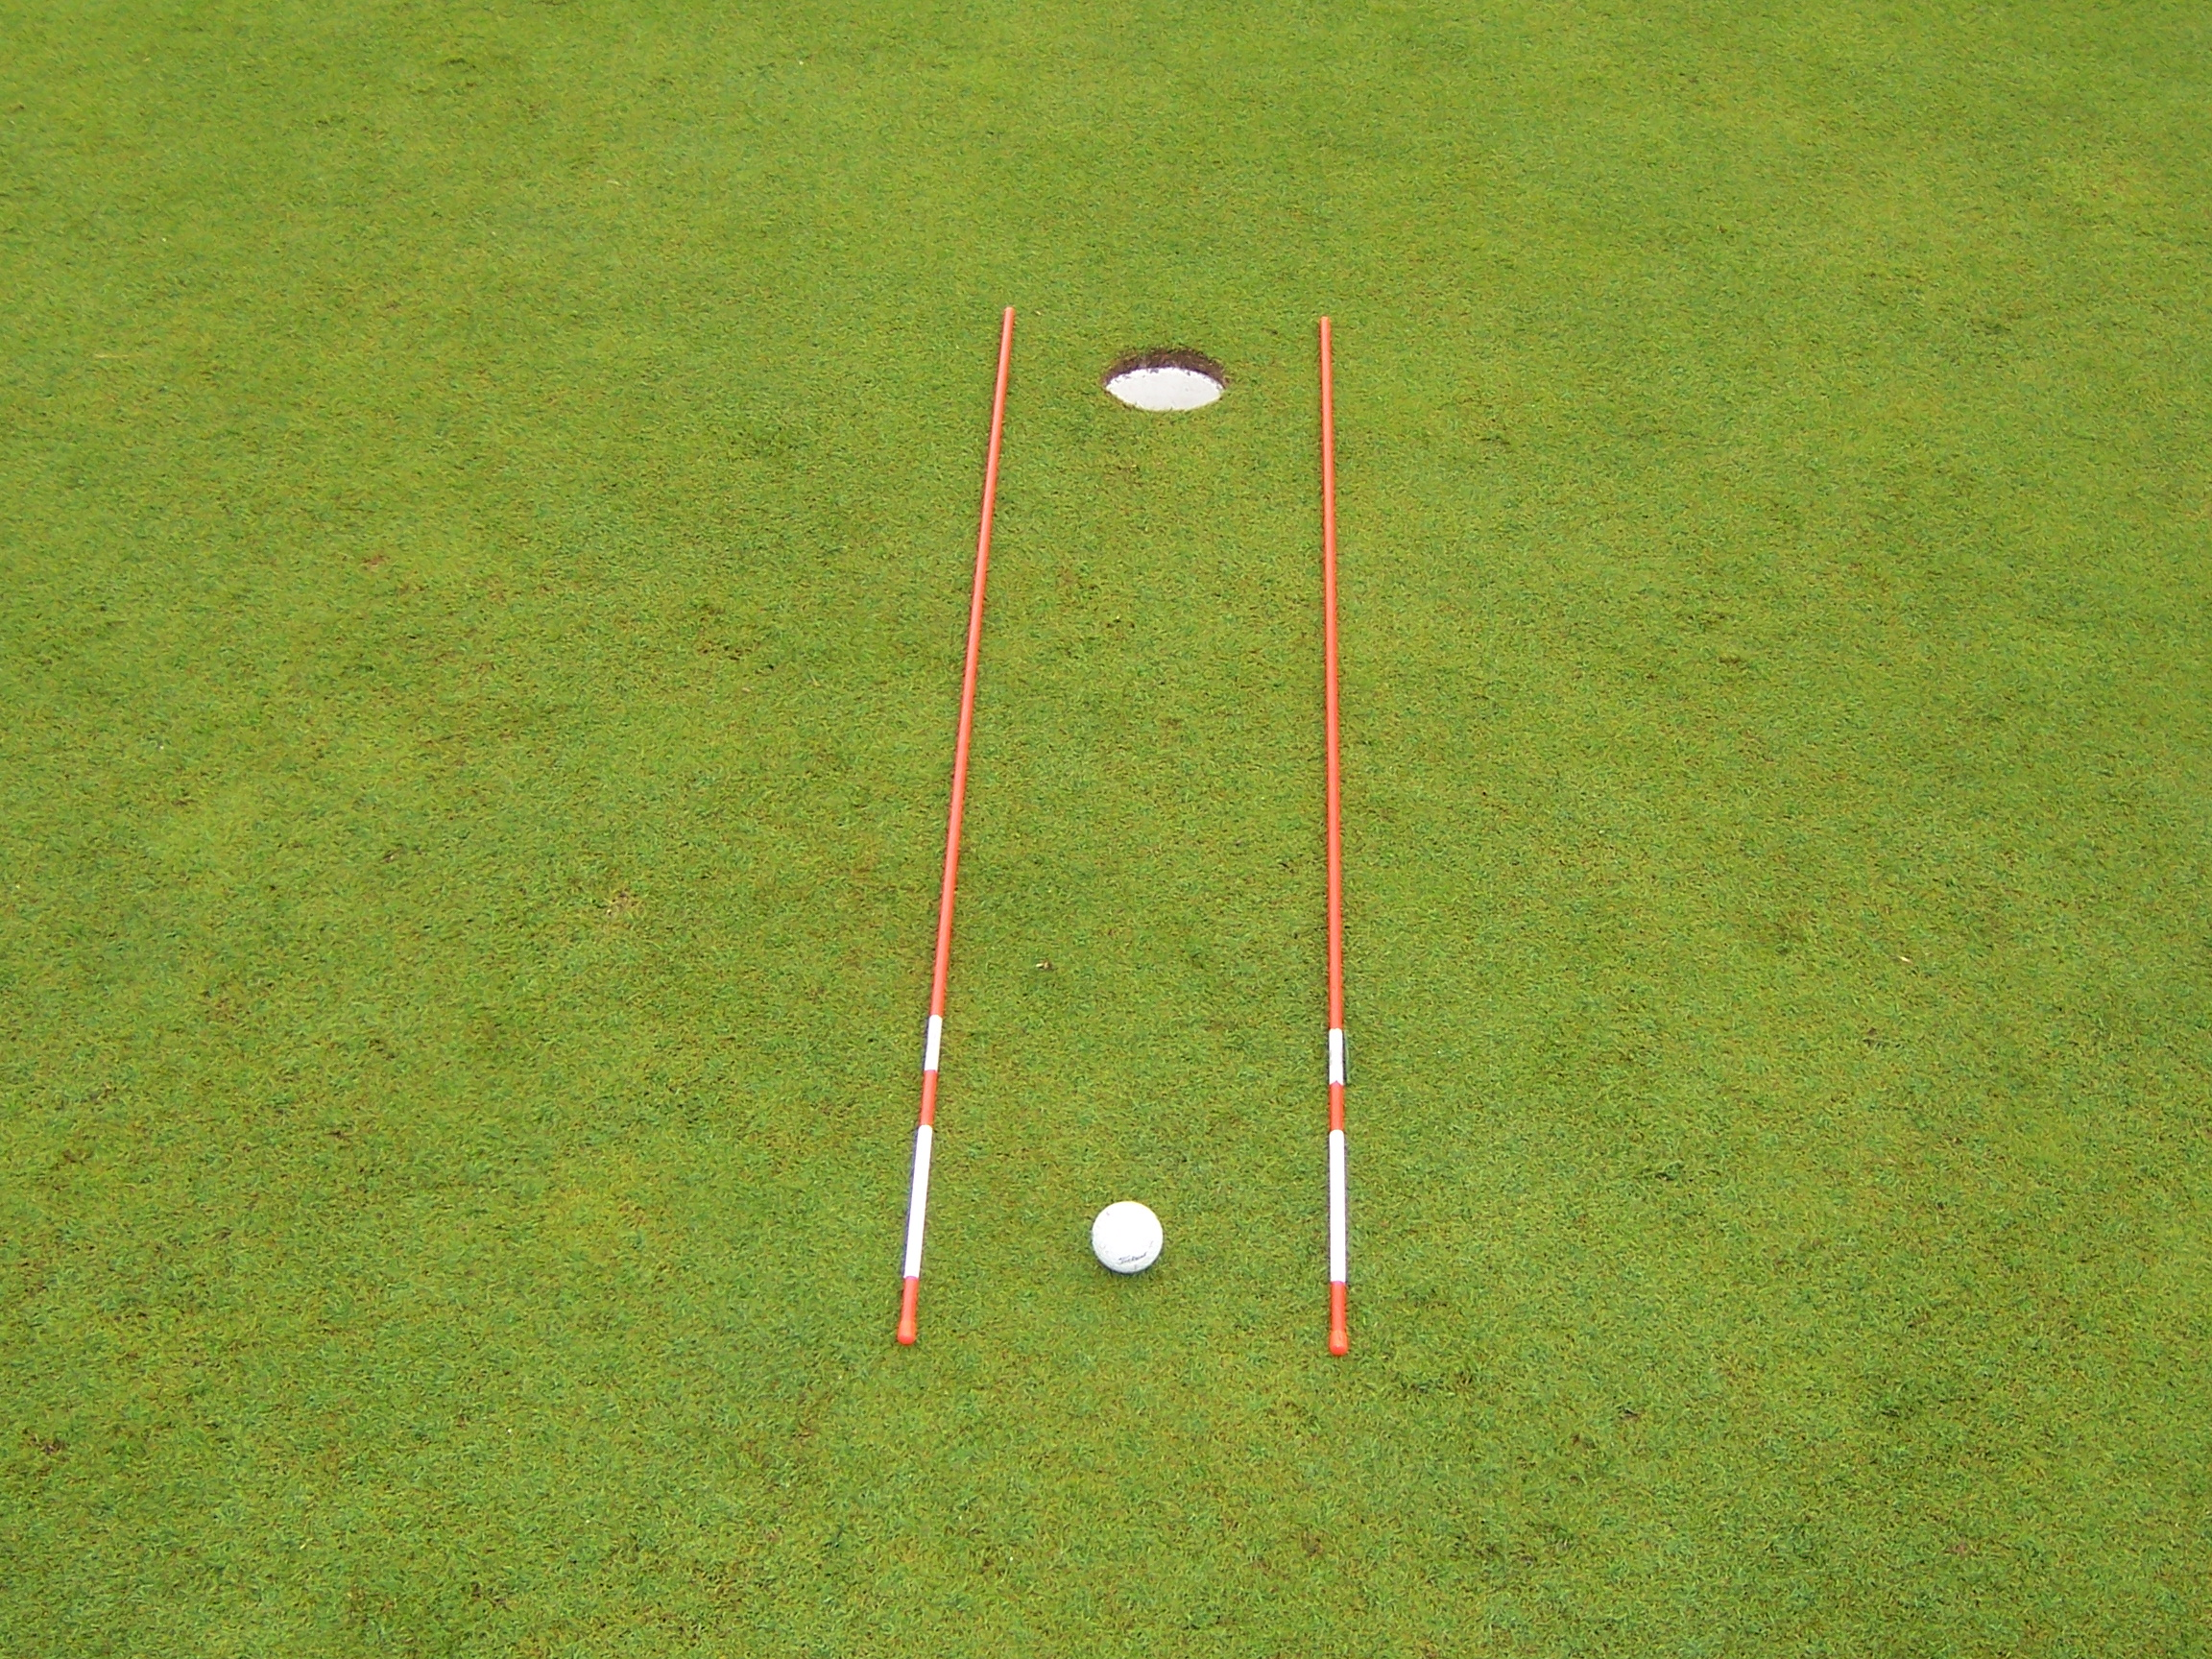 3-best-golf-putting-drills